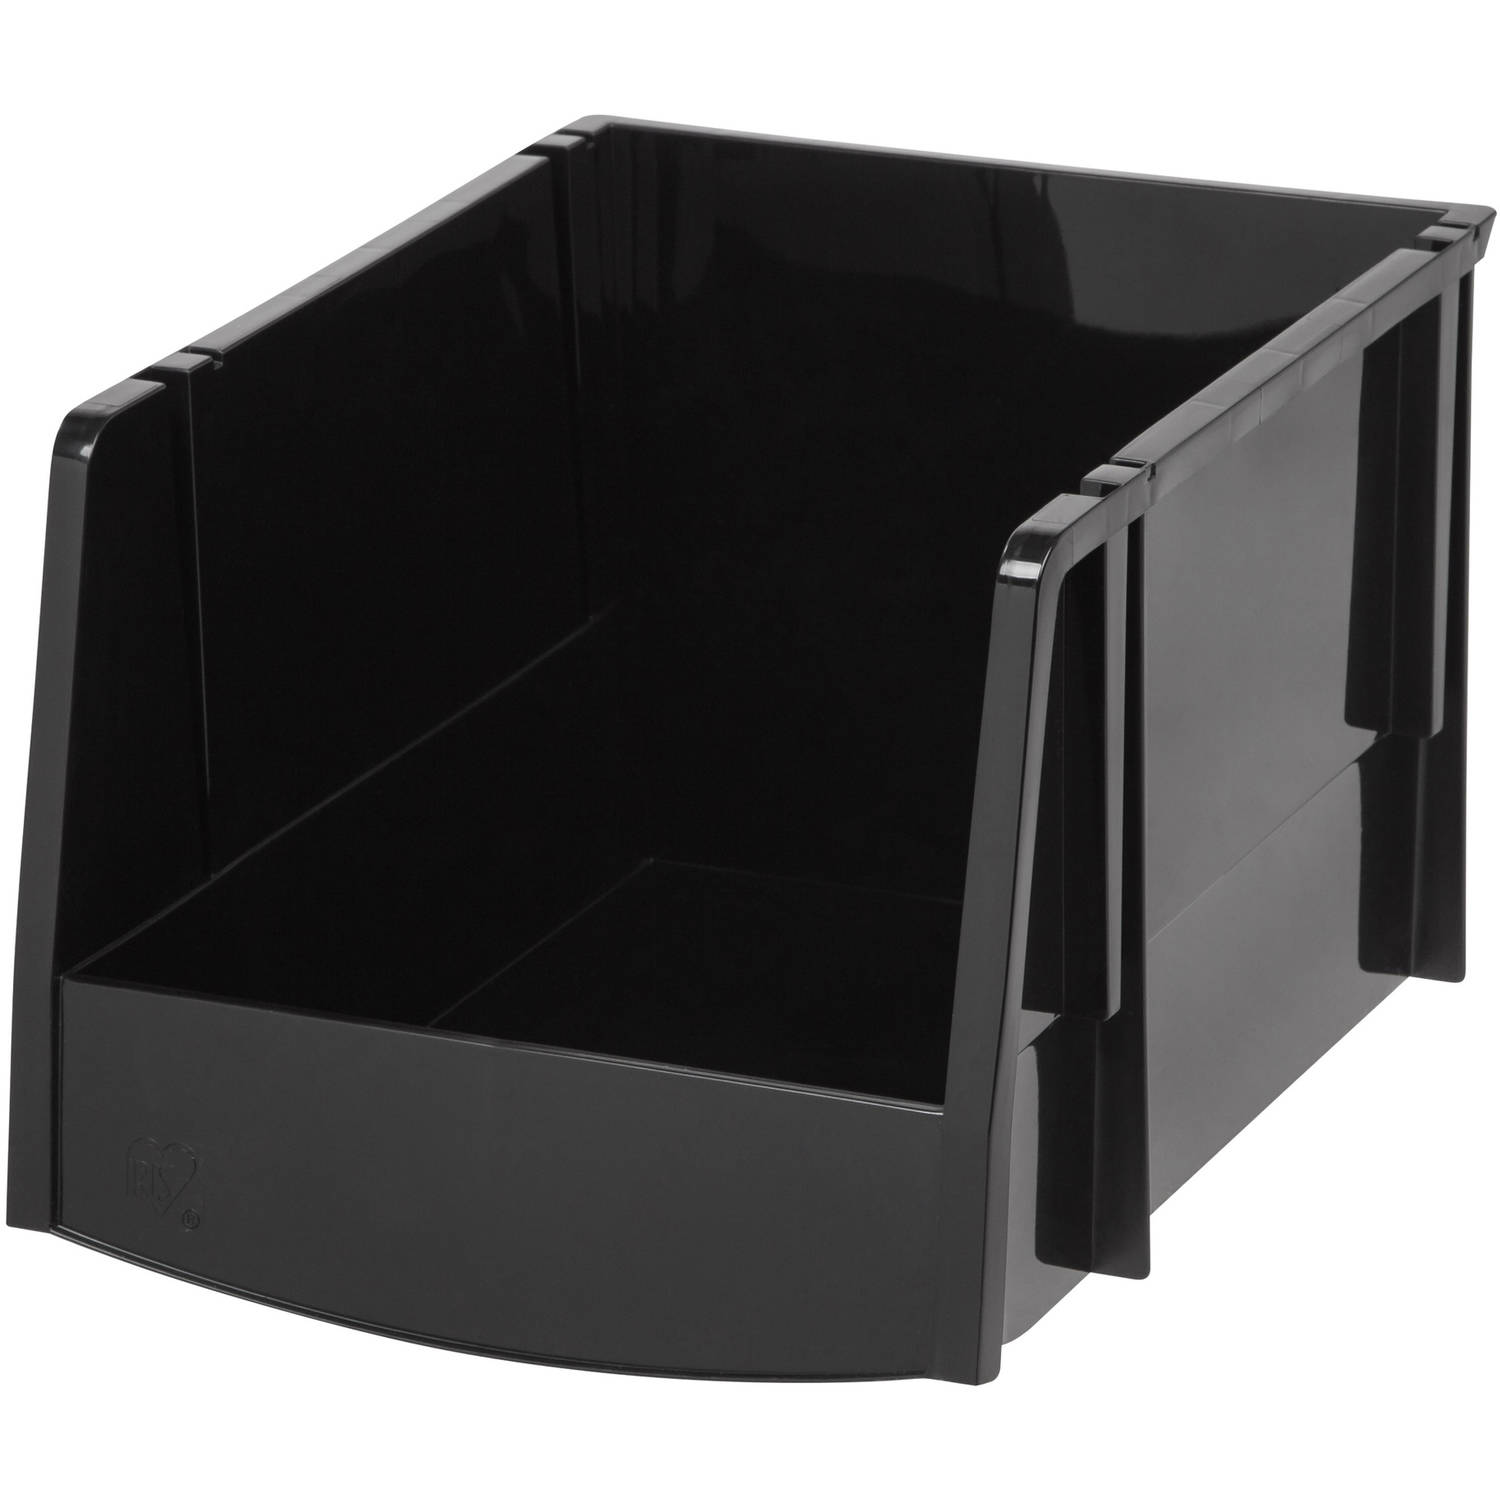 IRIS Hardware Garage Storage Extra Large Bin, Black